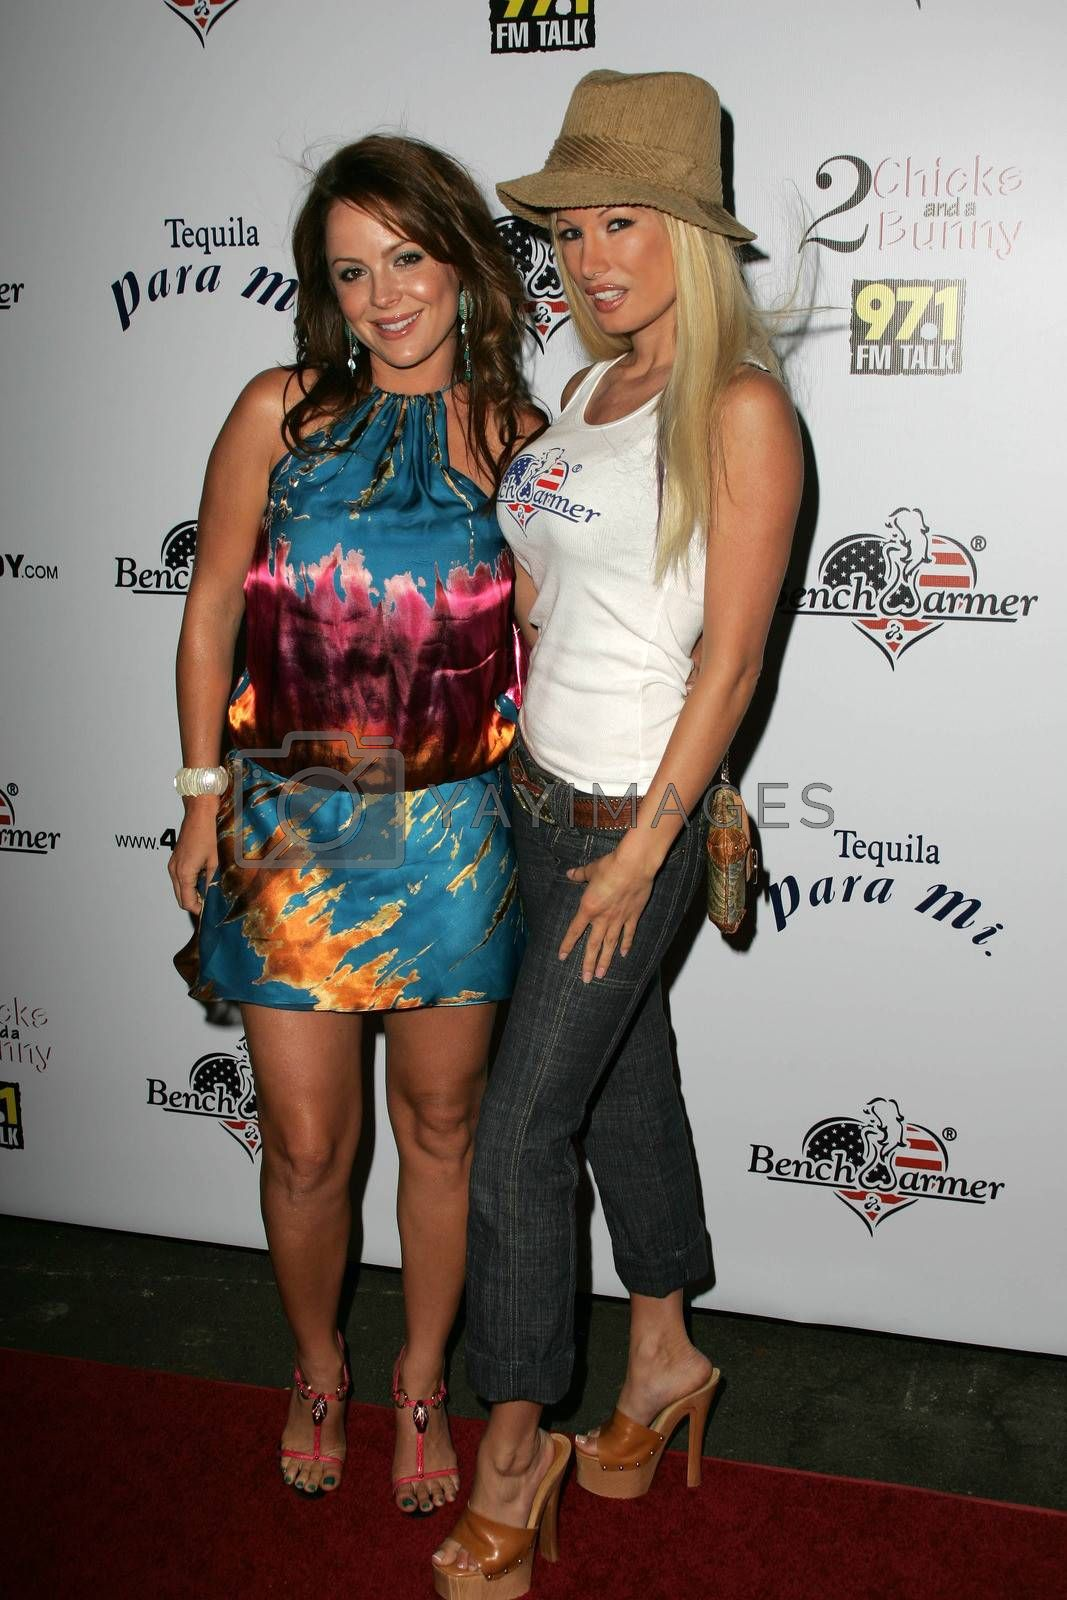 Mishel Thorpe and Lana Kinnear at Bench Warmer's 2nd Annual 4th of July Celebration, The Day After, Hollywood, CA 06-29-05